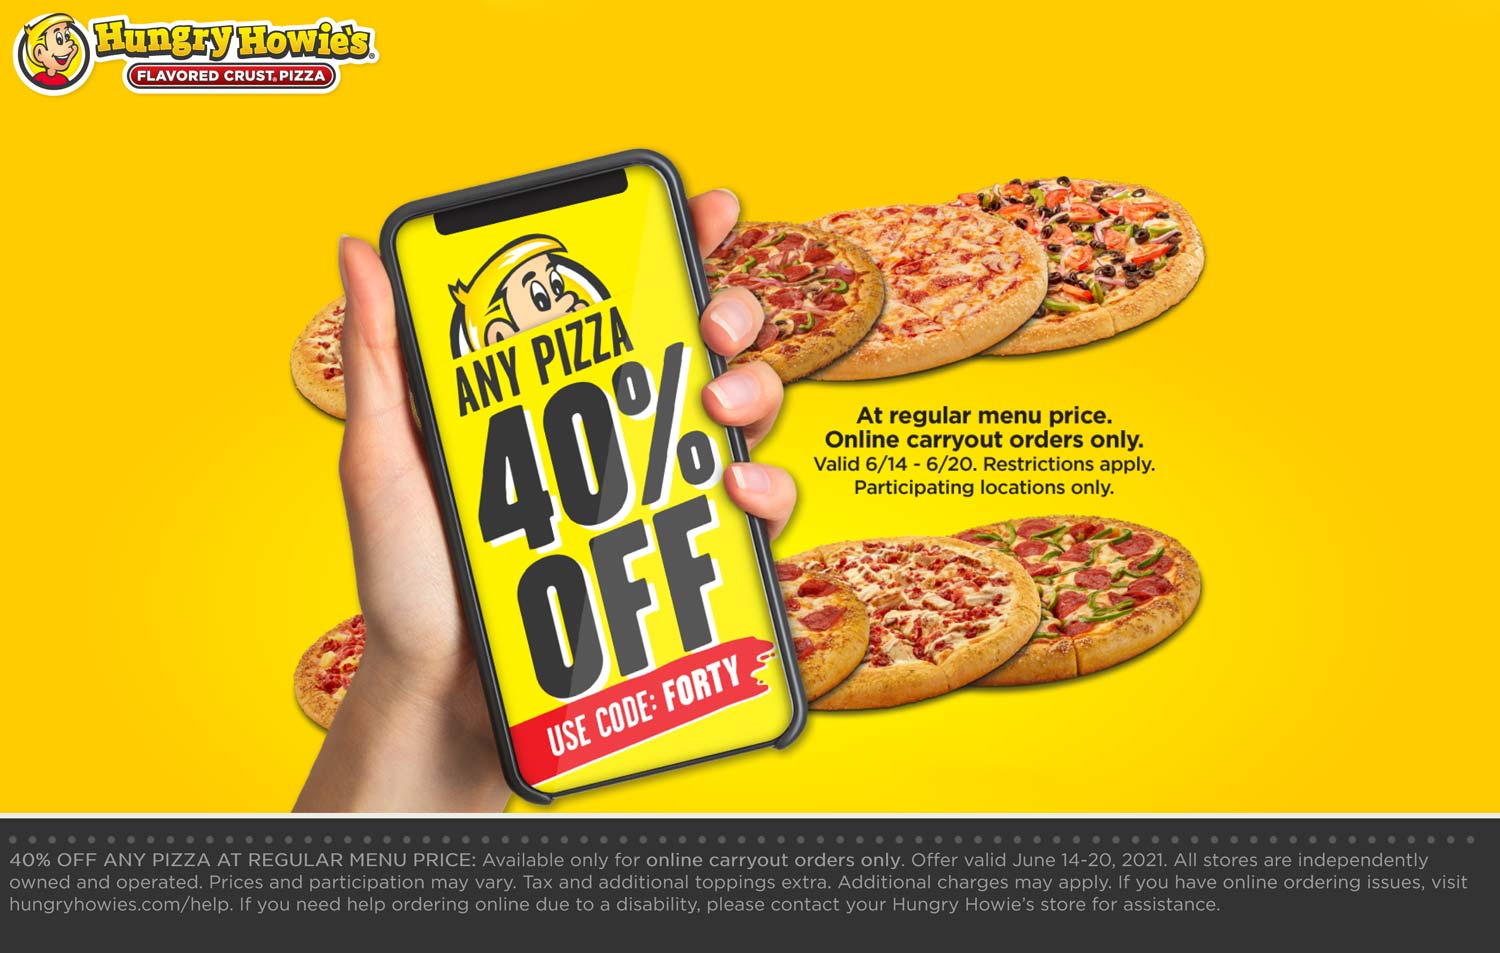 Hungry Howies restaurants Coupon  40% off any pizza at Hungry Howies via promo code FORTY #hungryhowies